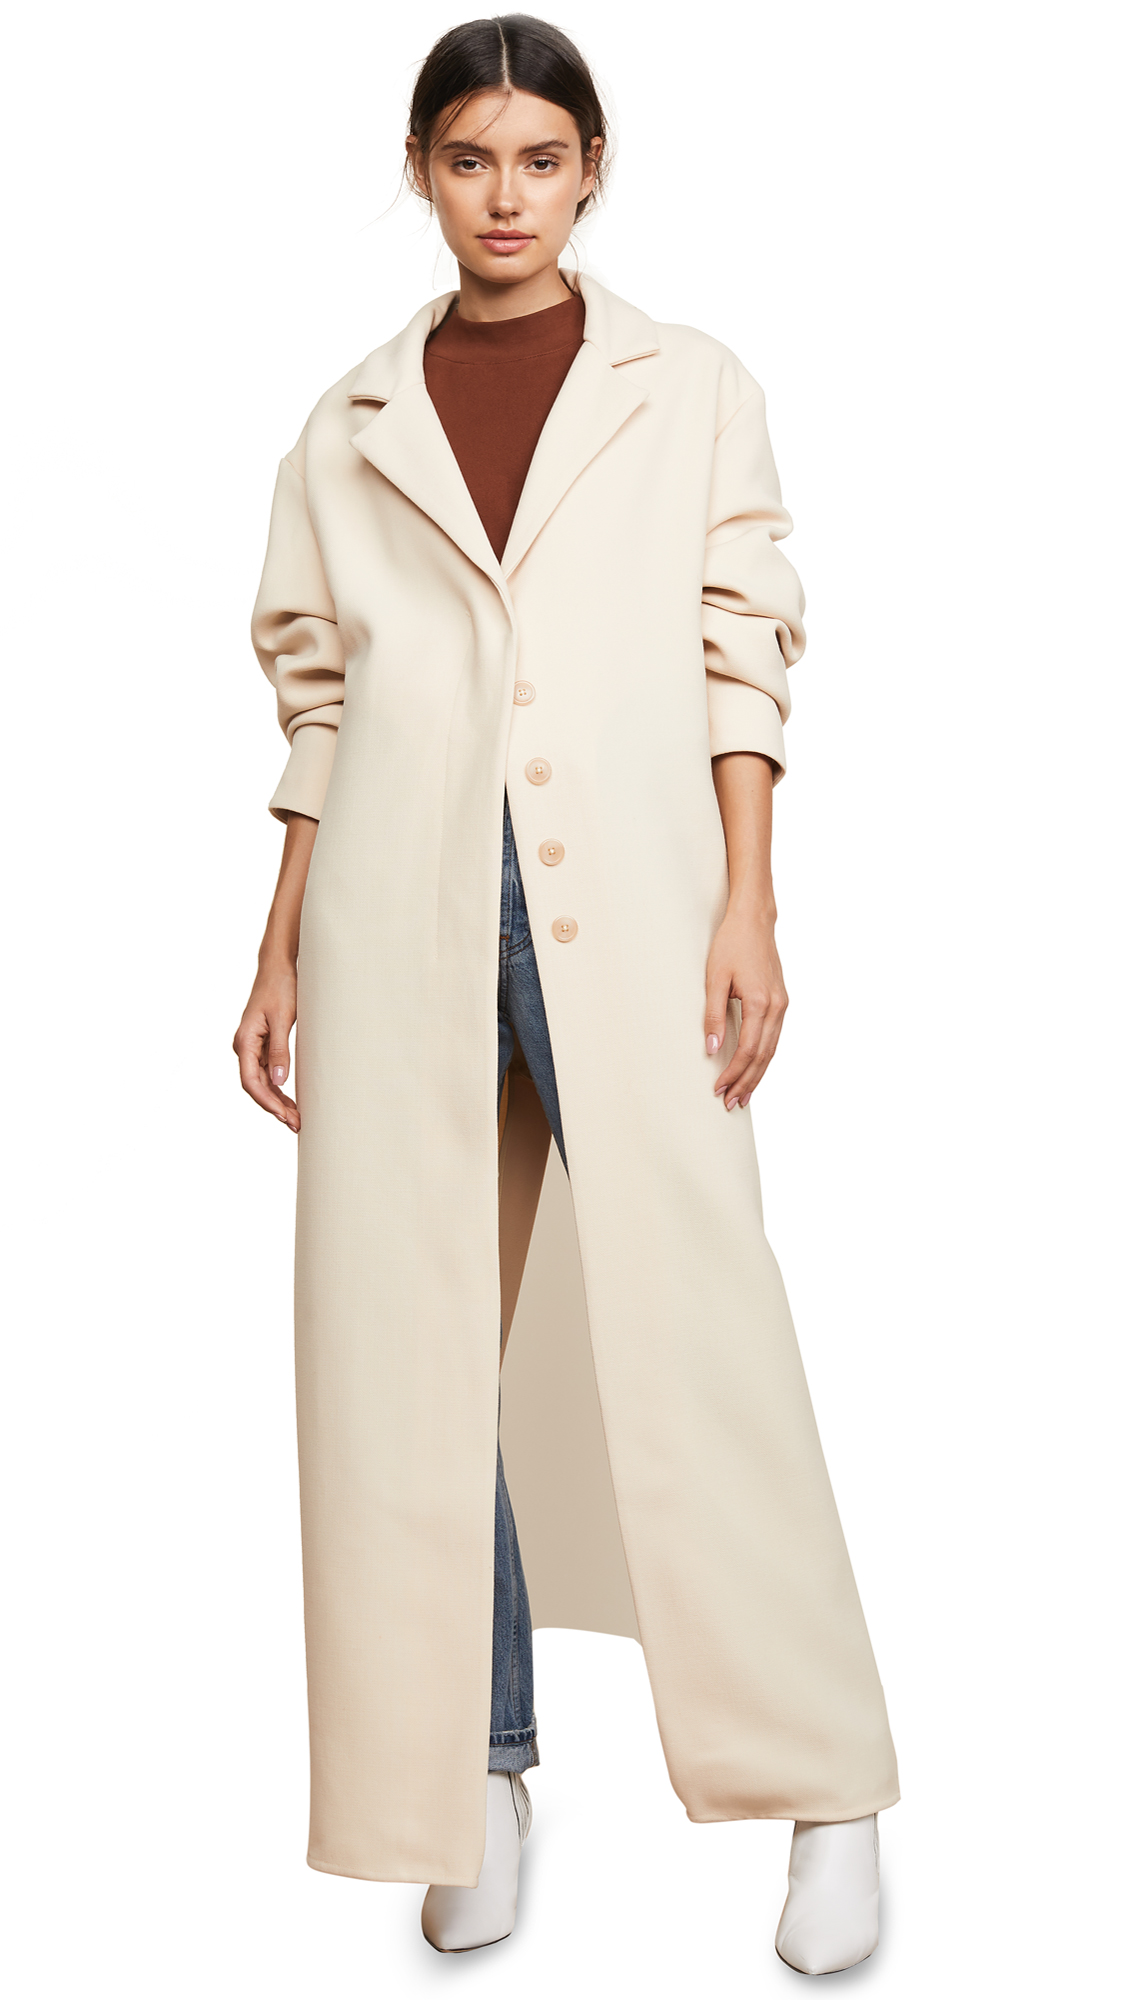 Jacquemus Le Manteau Coat In Beige